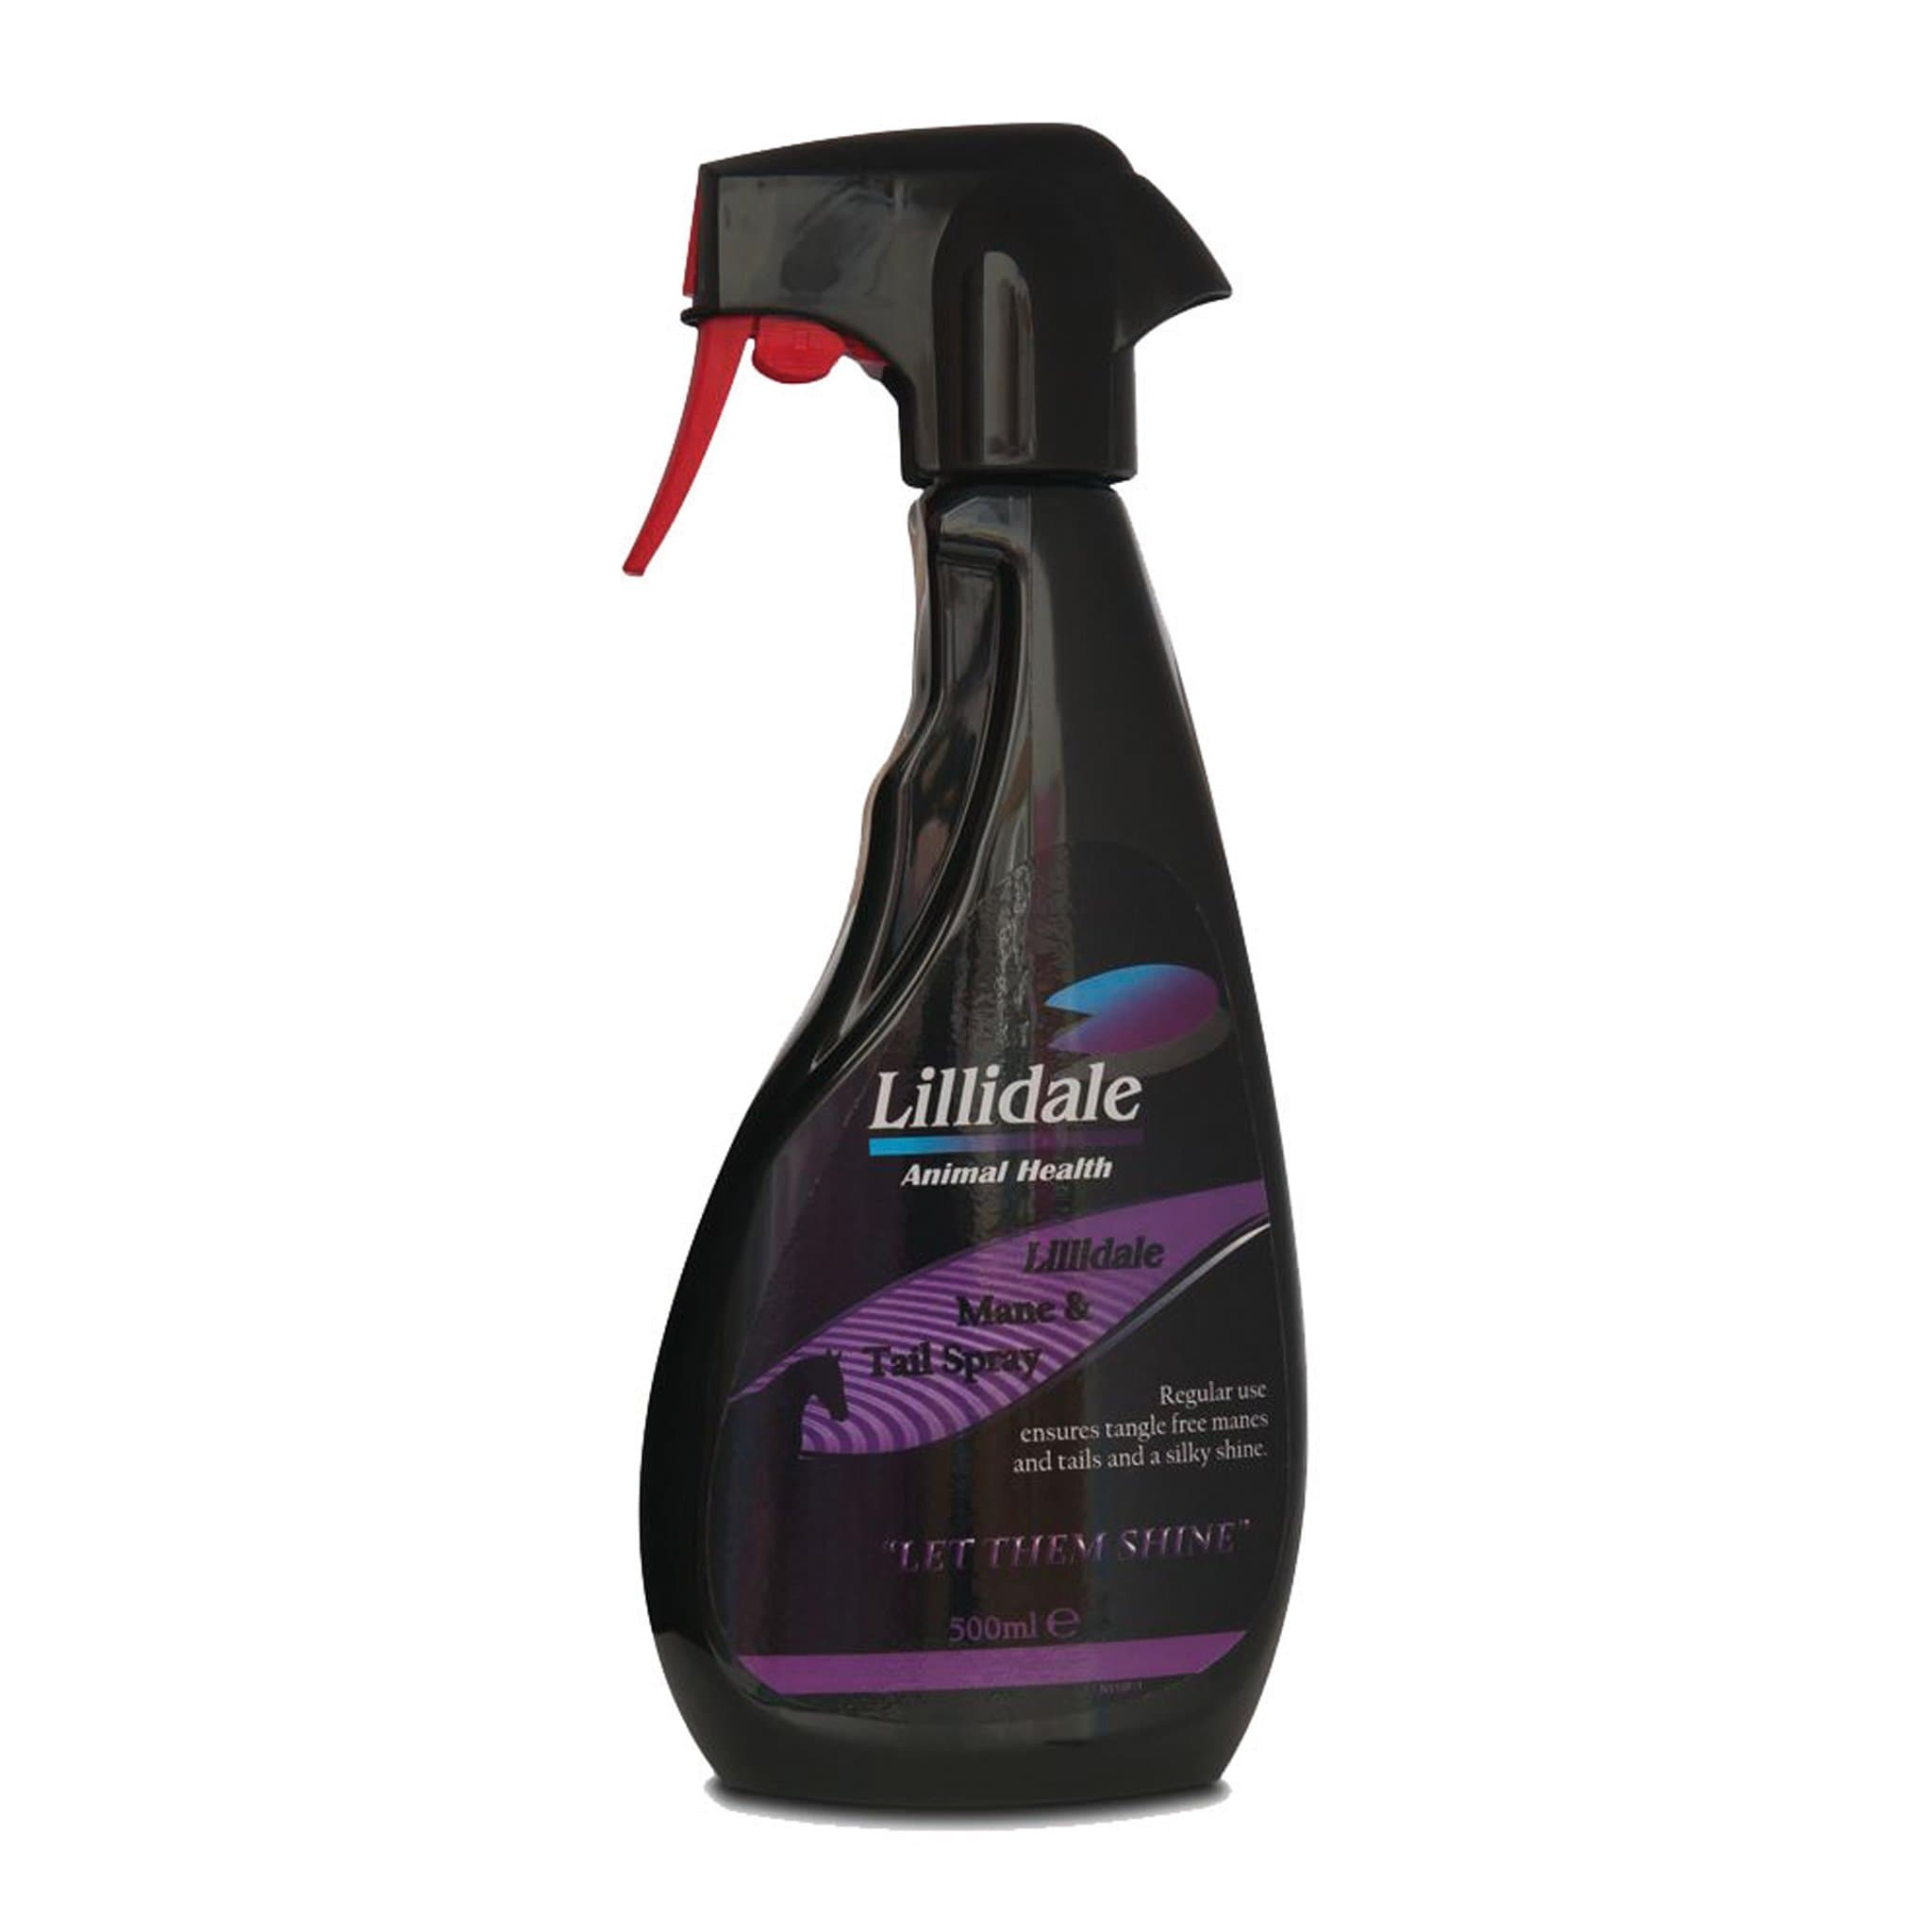 Lillidale Mane and Tail Conditioner 500ml spray 6528.